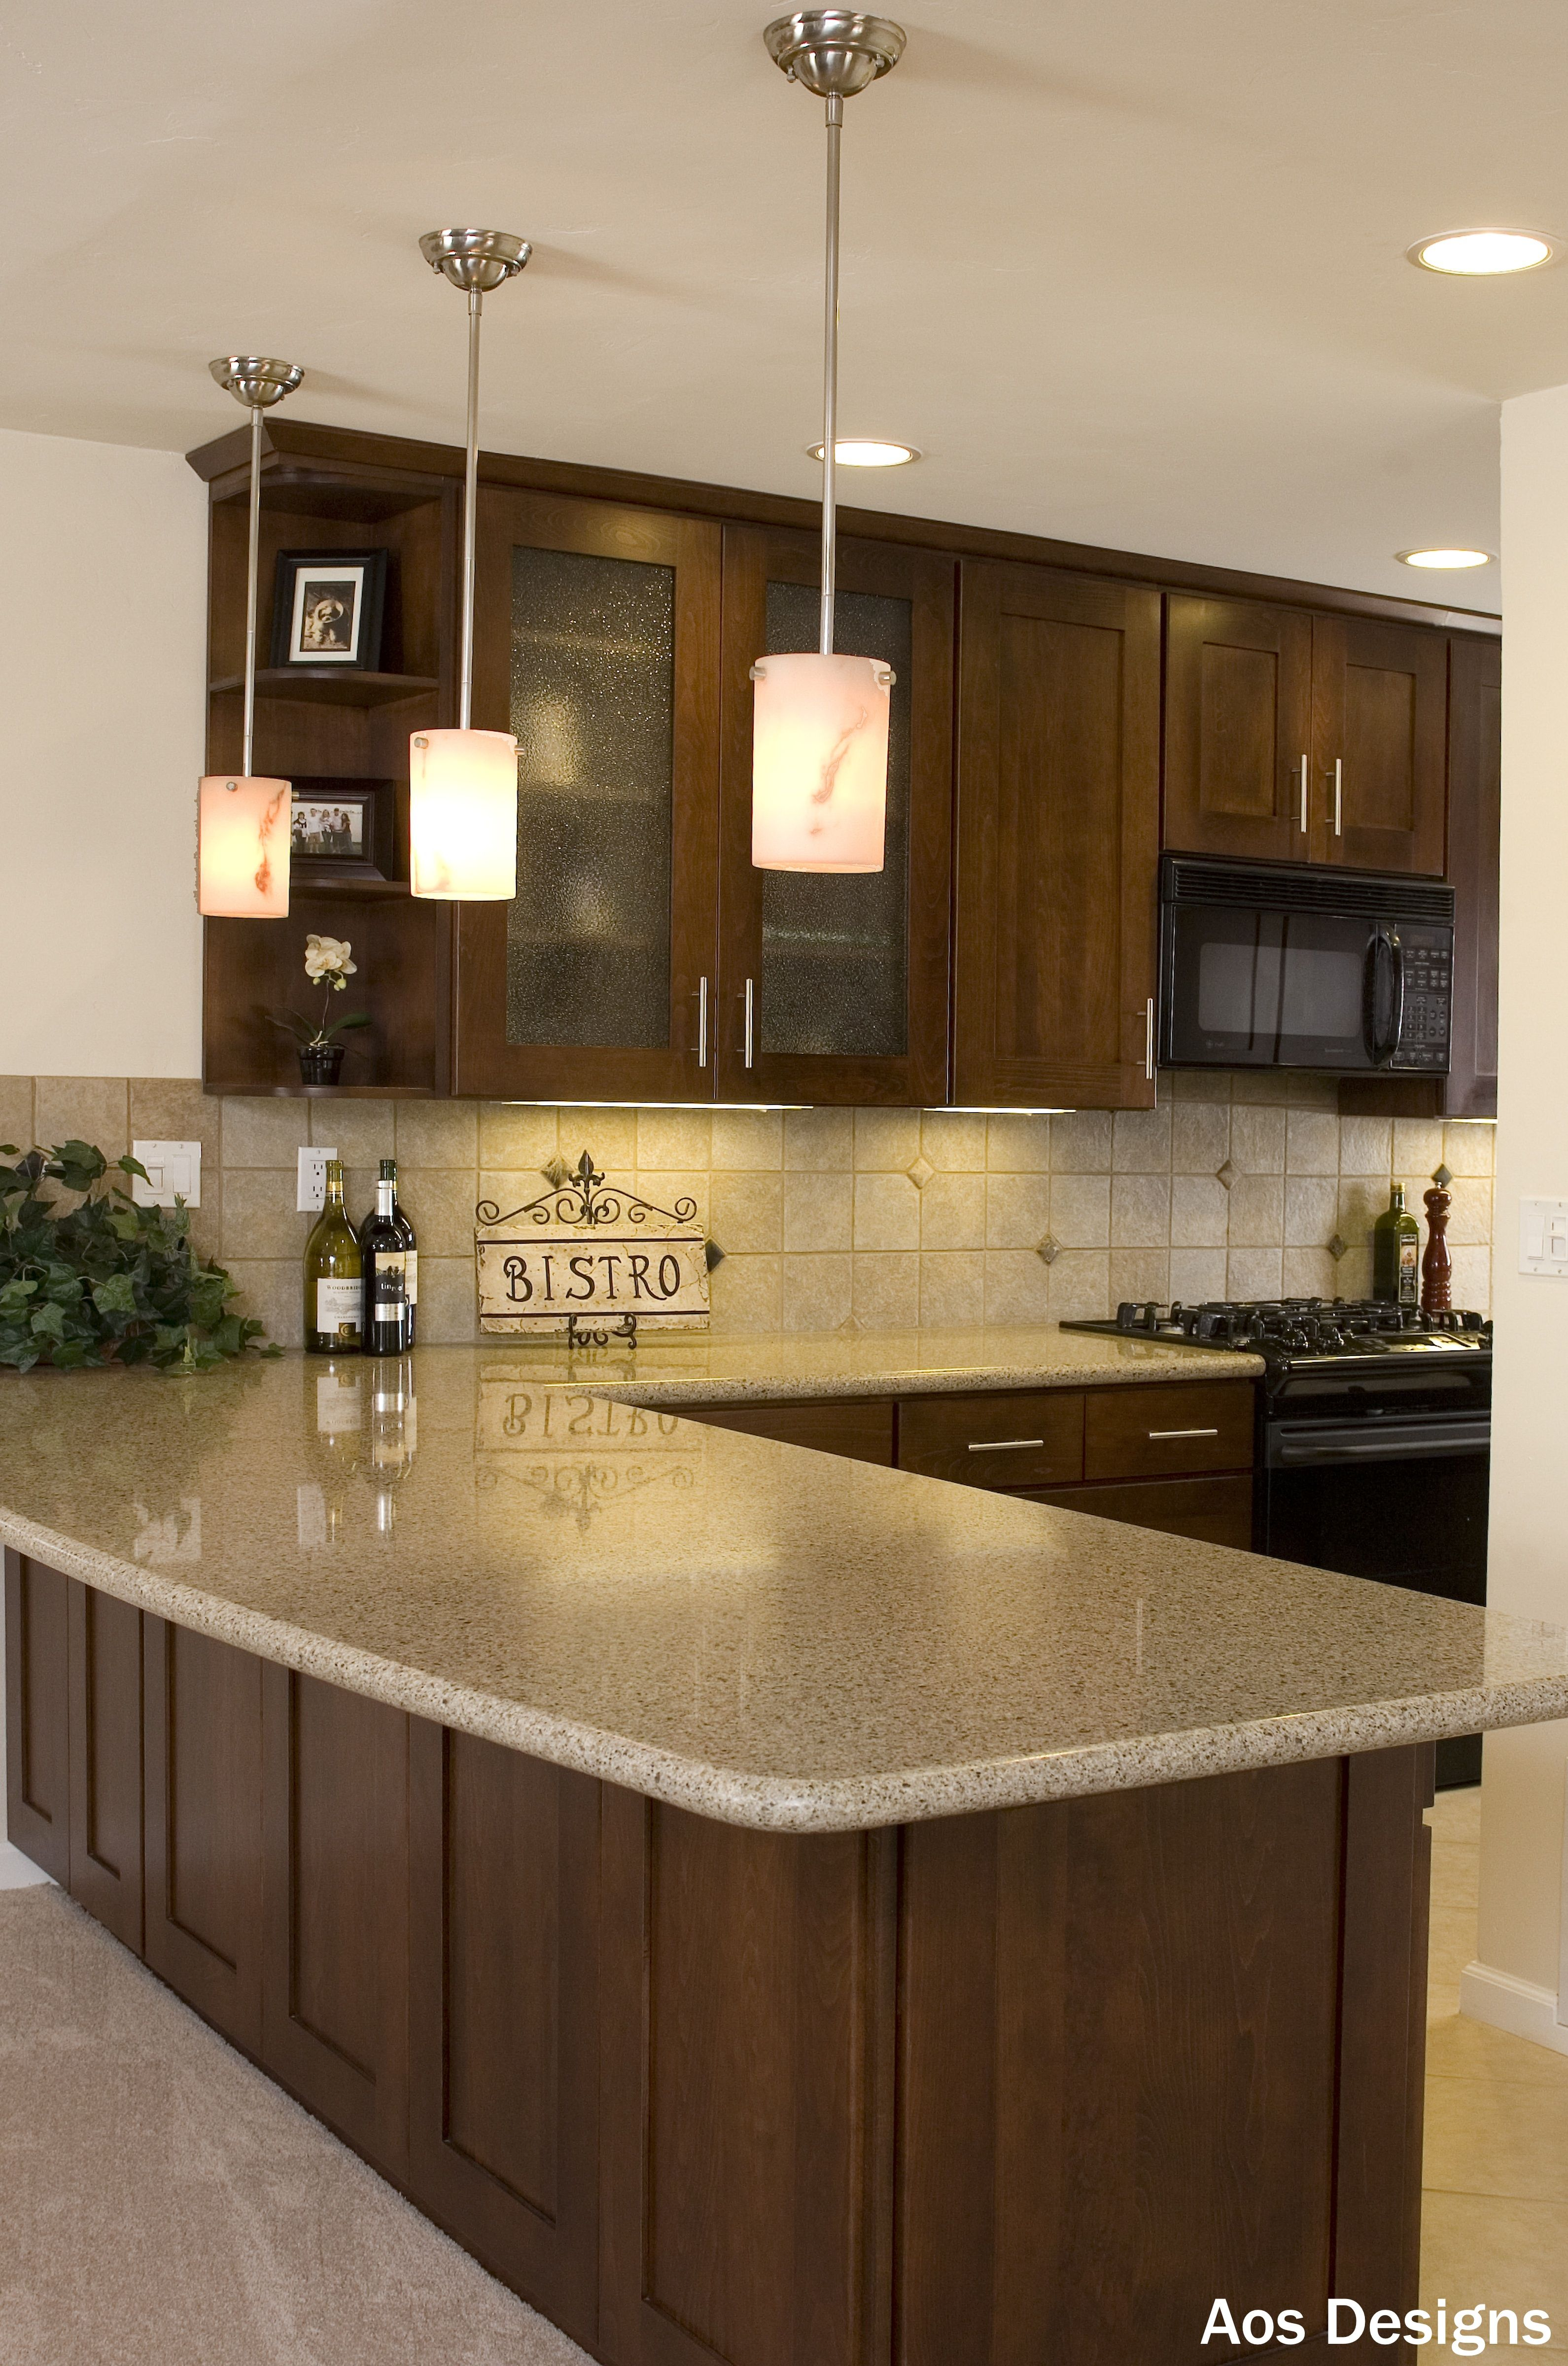 Remodel A Kitchen Century Cabinets How Much Does It Cost To Ideas Those Who Love Large Granite Counters Pendant And Undercabinet Lighting Can T Help But Fall In With This Diy